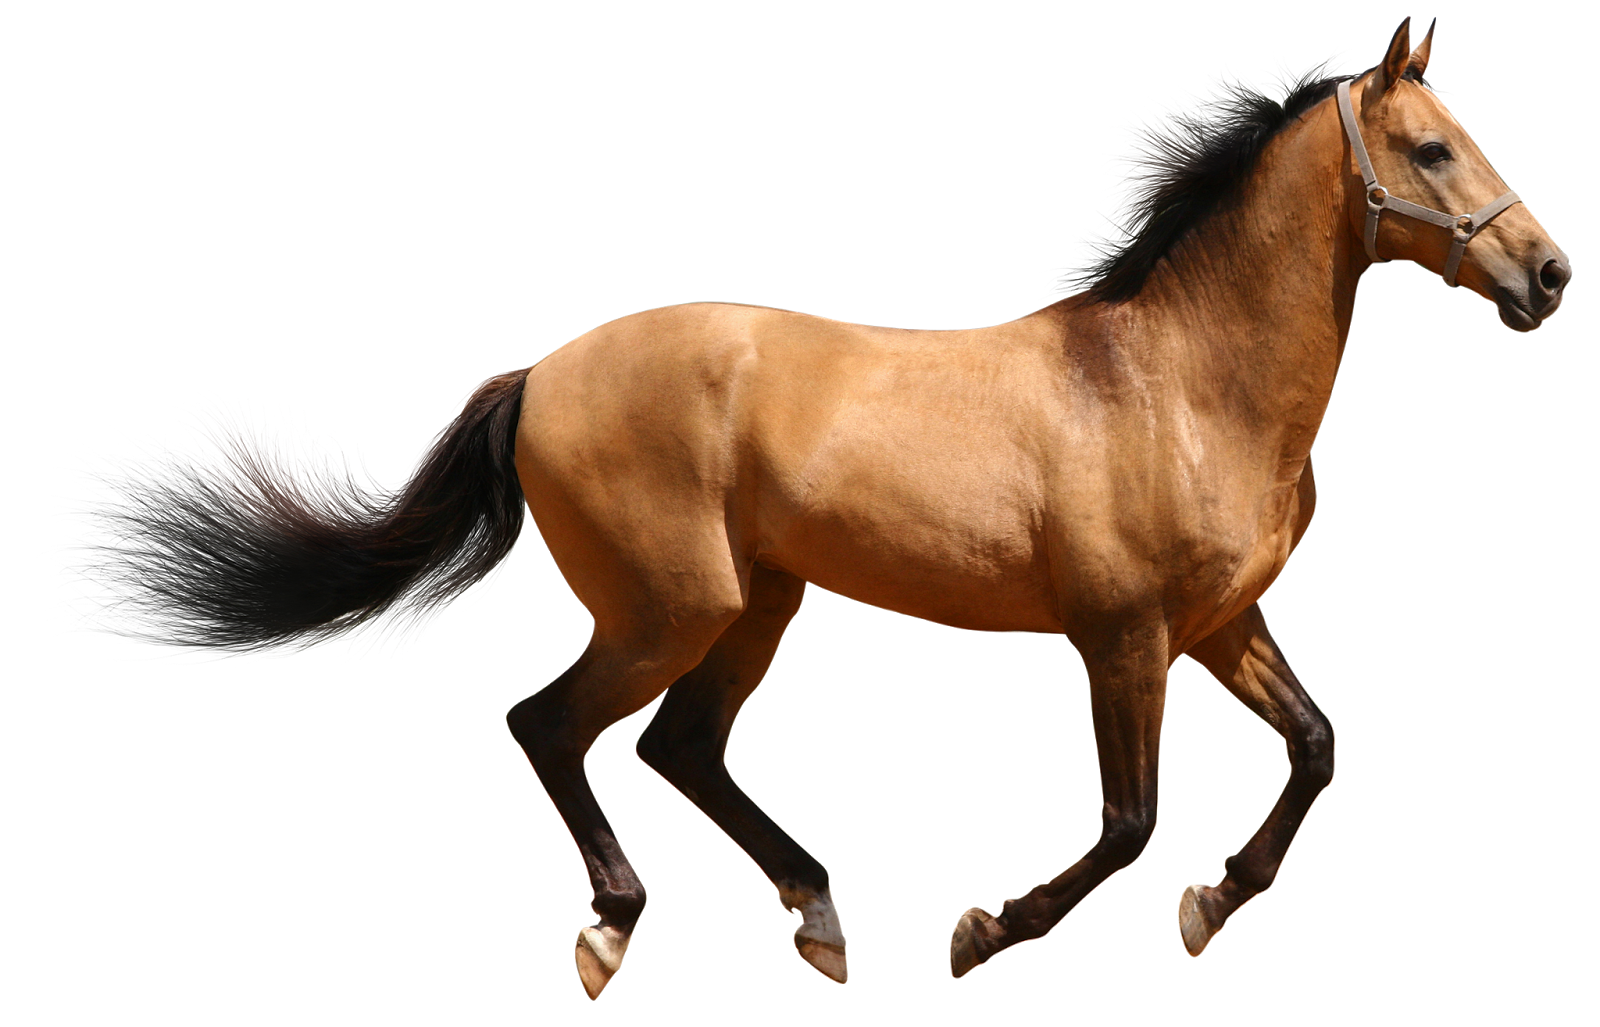 Horse 3d Animal Png image #22321 - Animal PNG - 3d PNG HD